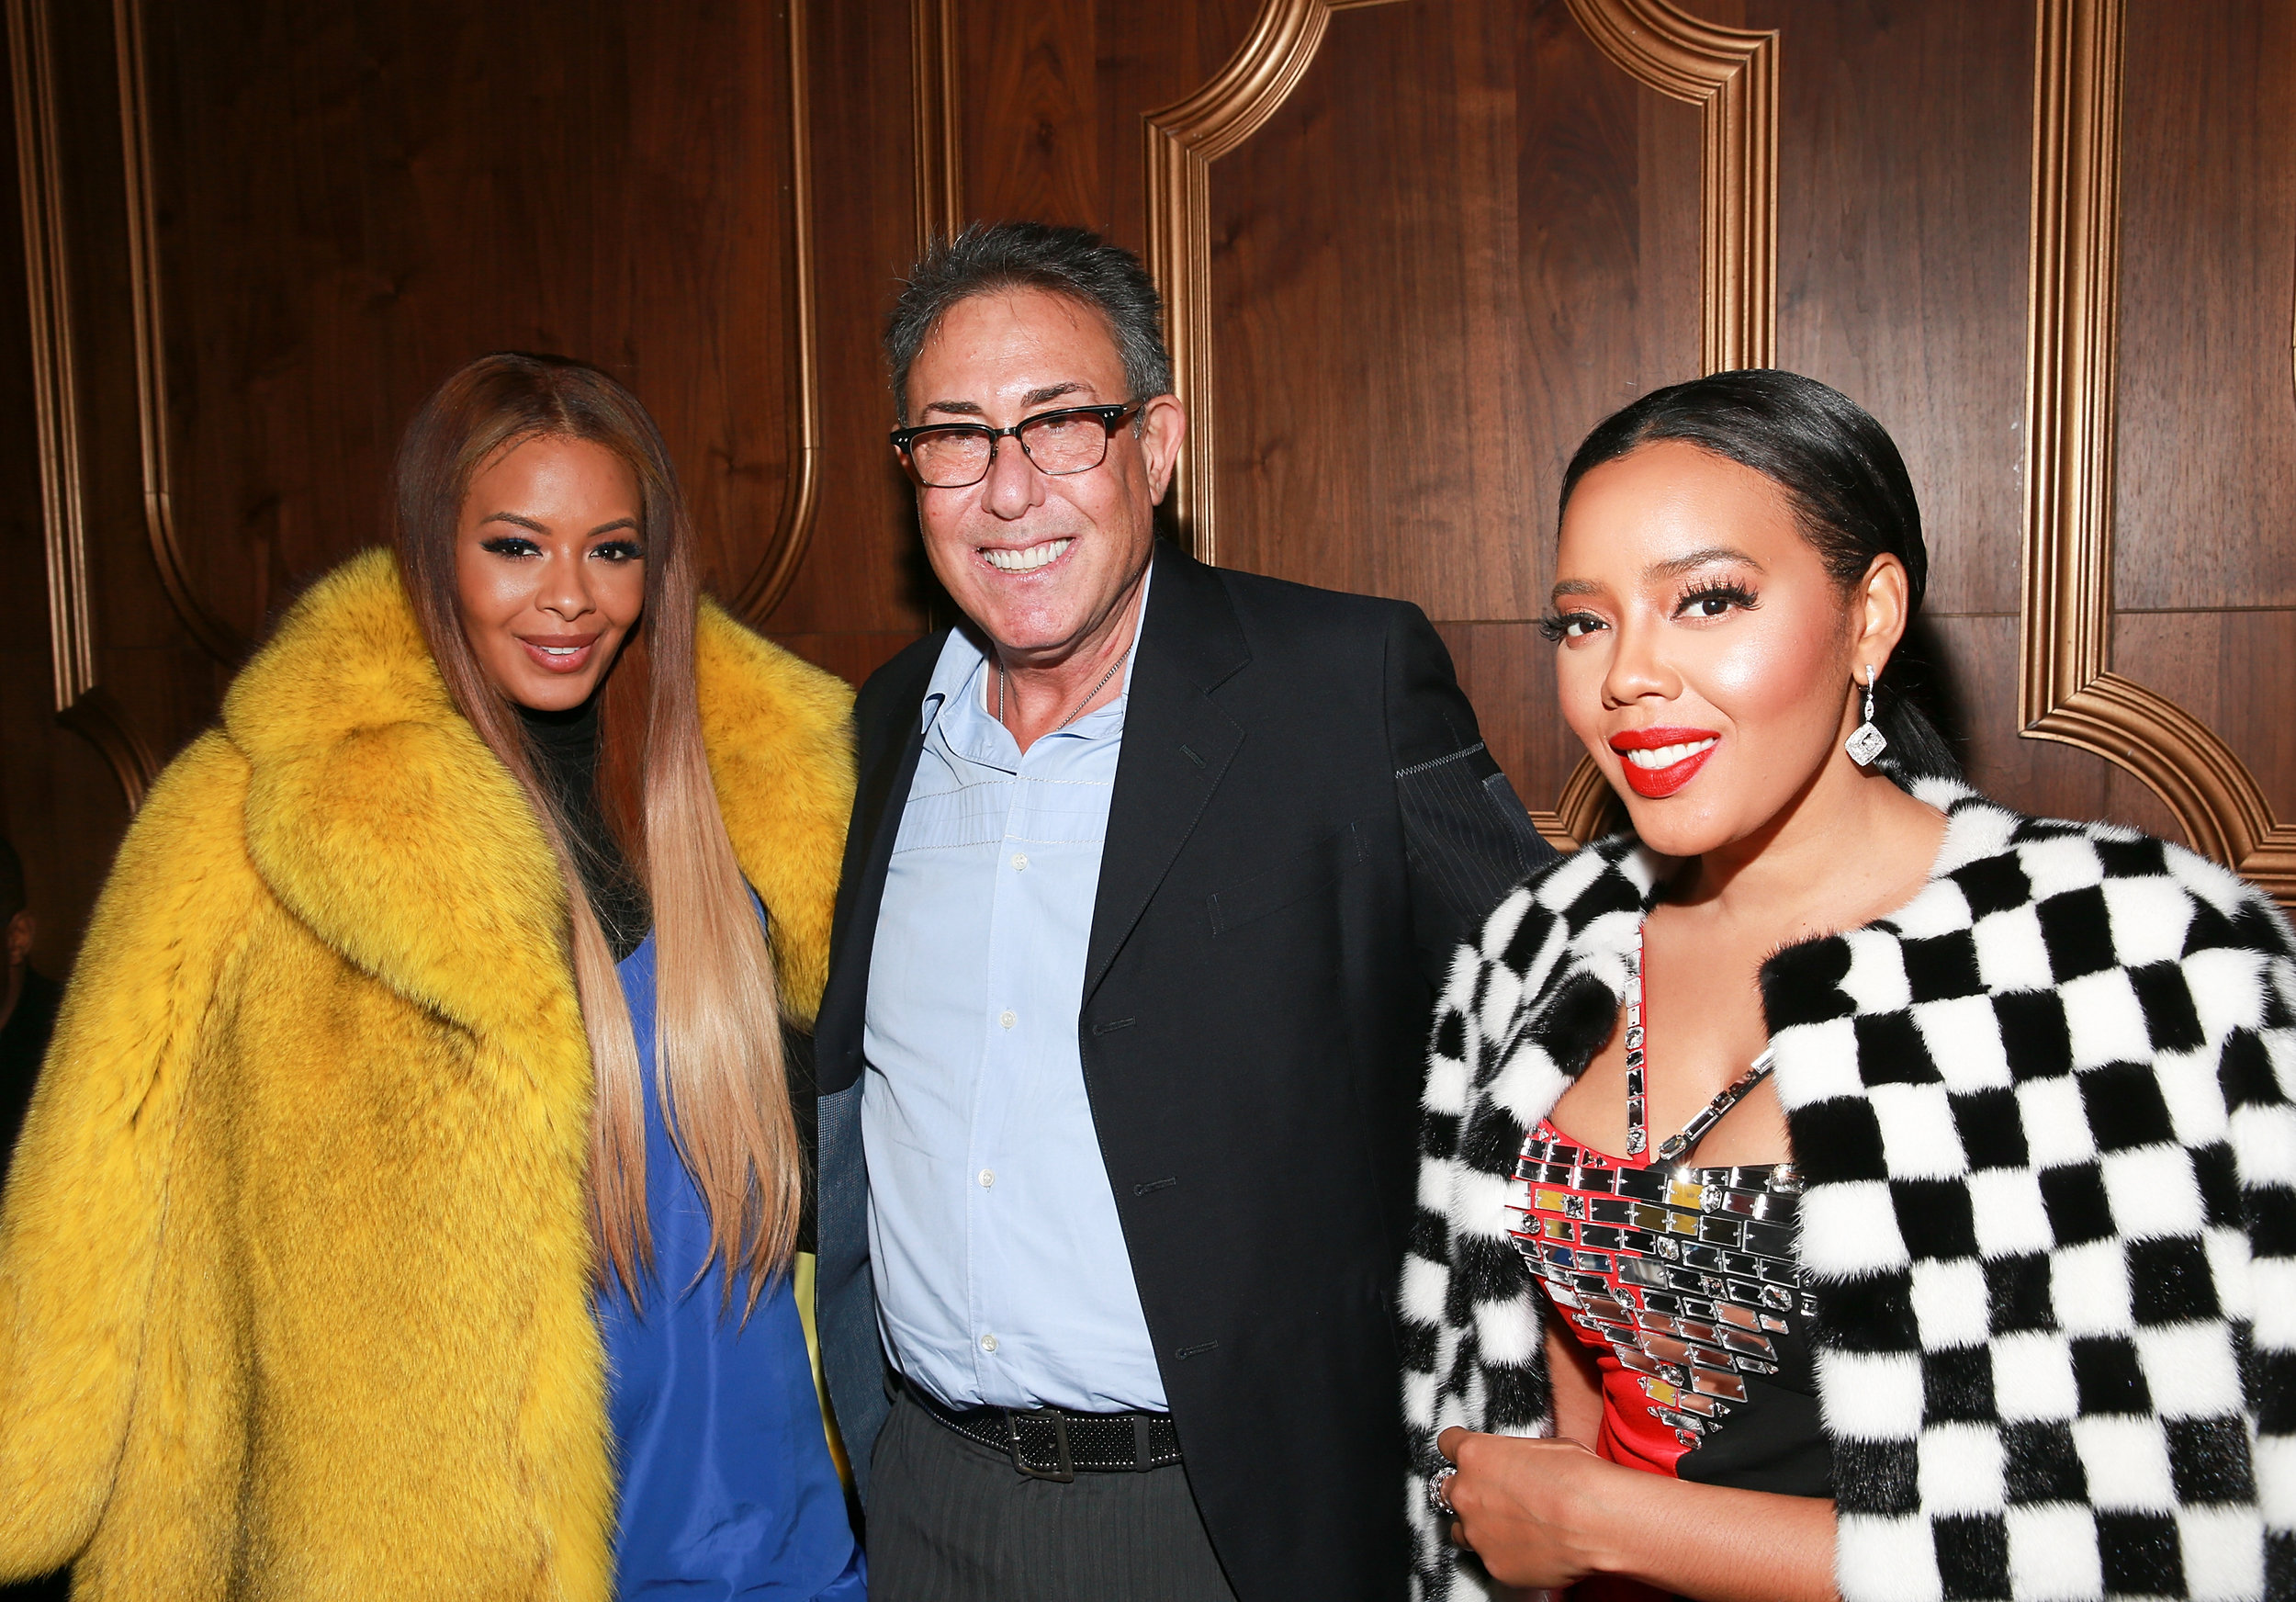 "(L - R) Vanessa Simmons, President and General Manager of WE tv Marc Juris, and Angela Simmons attend the ""Growing Up Hip Hop"" season 4 party on December 4, 2018 at Avenue in New York City. (Photo by Bennett Raglin/Getty Images for WE tv)"